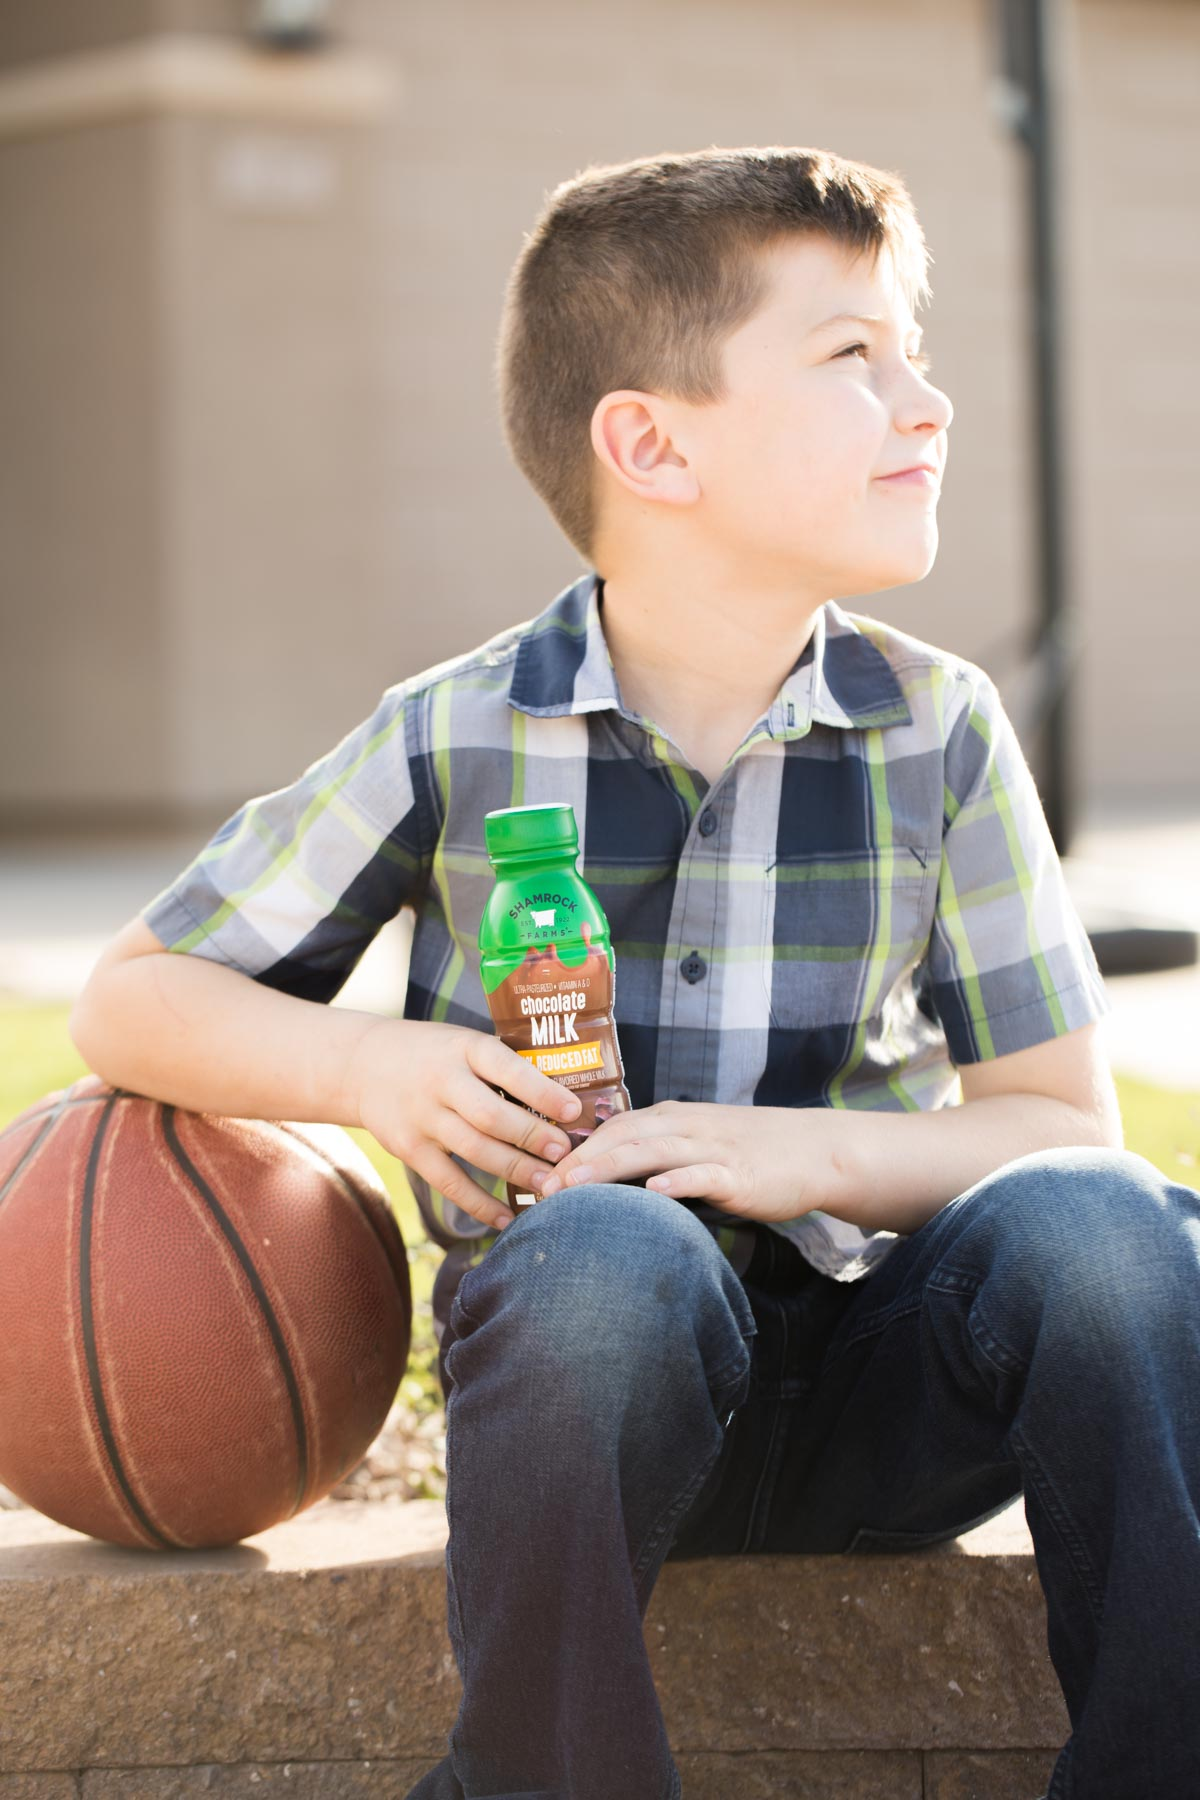 Boy sitting by a basketball with Shamrock Farms chocolate milk in his hand.